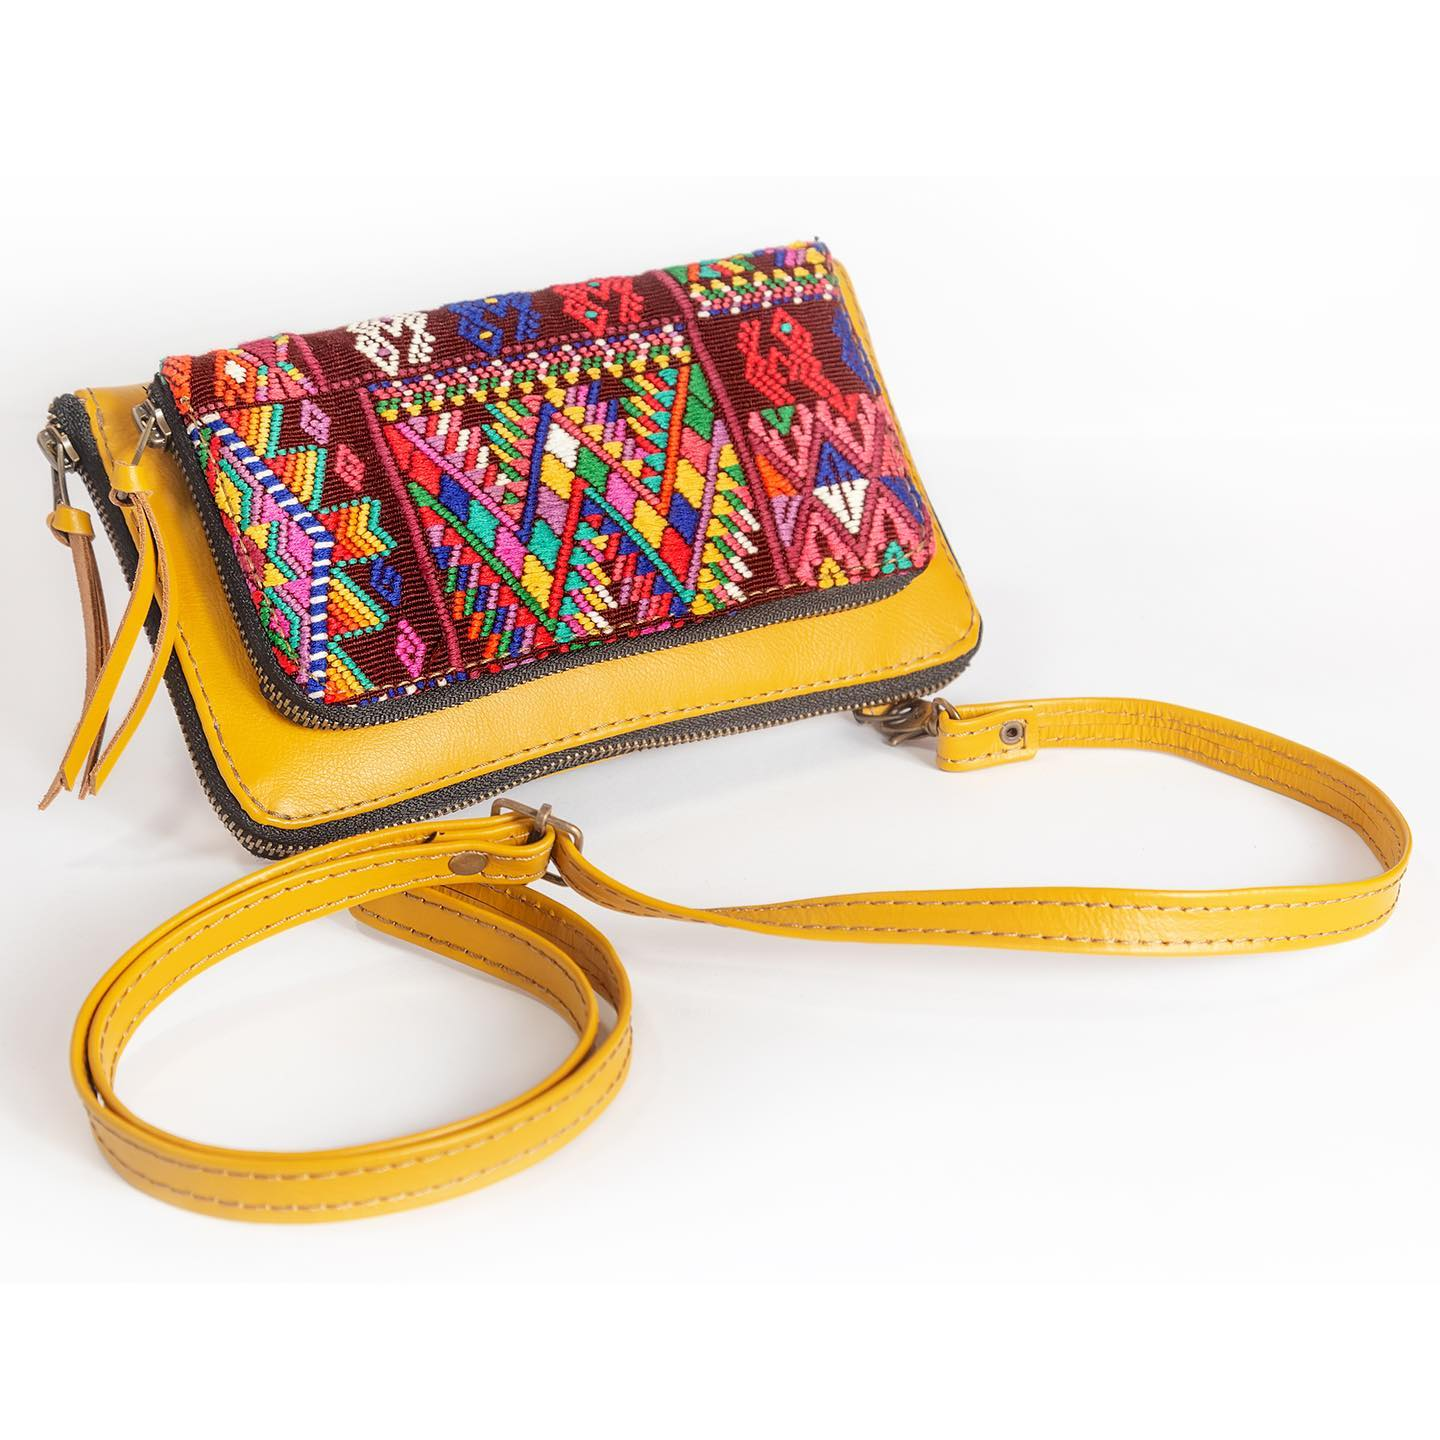 Amaite Convertible Clutch by Poncho's Bags | Inspire Me Latin America